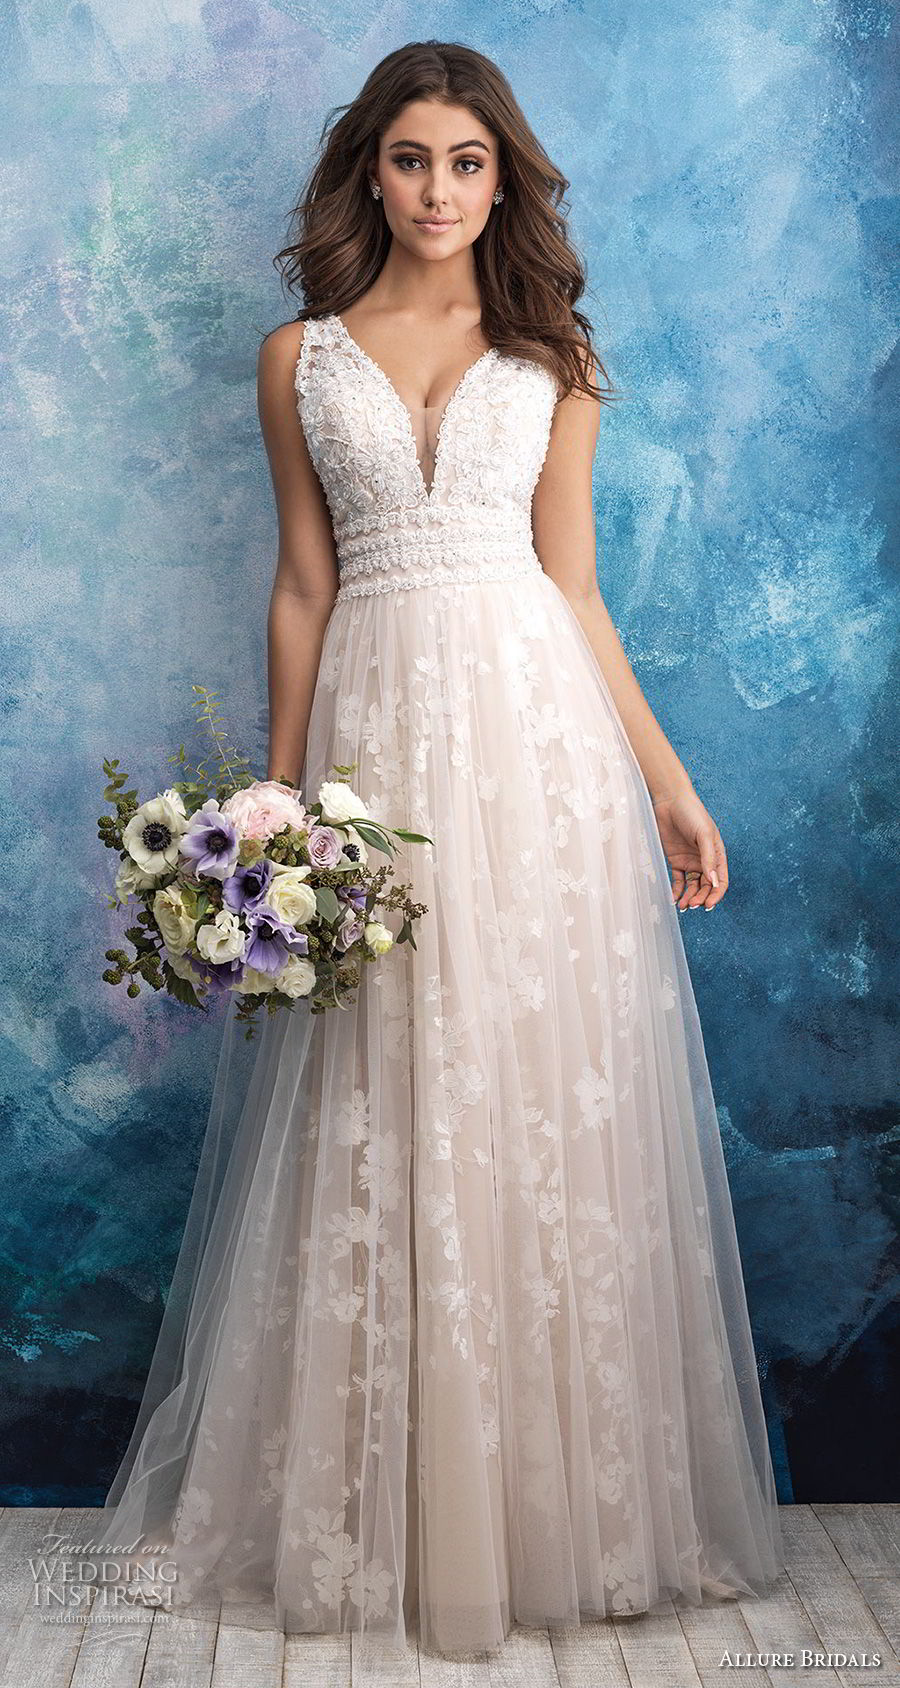 allure bridals fall 2018 bridal sleeveless deep v neck heavily embellished bodice romantic a line wedding dress v back sweep train (16) mv